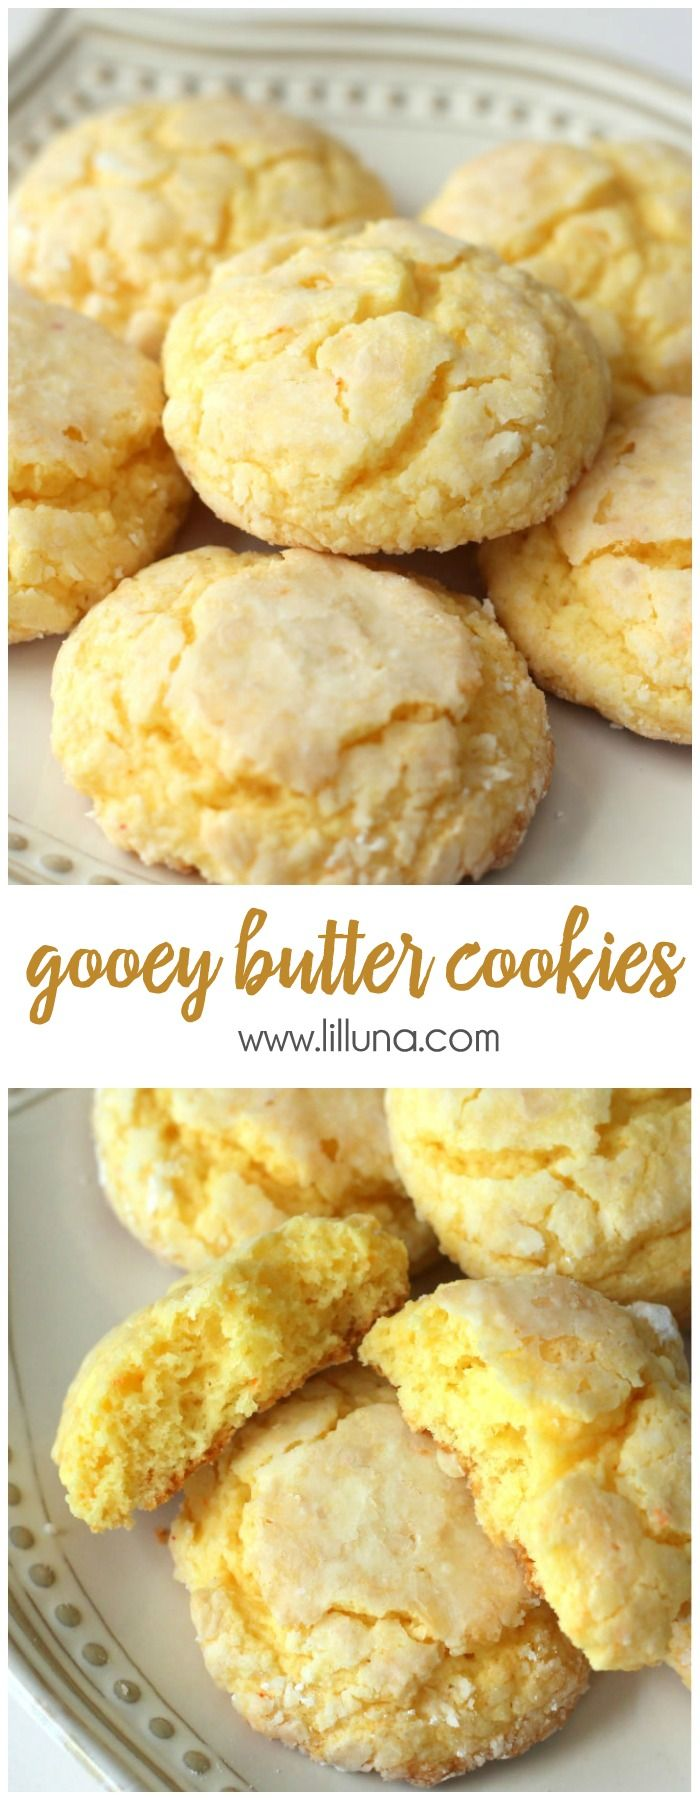 Ooey Gooey Butter Cookies - one of our favorite treats! They're made with cake mix, butter and cream cheese and are always a hit!